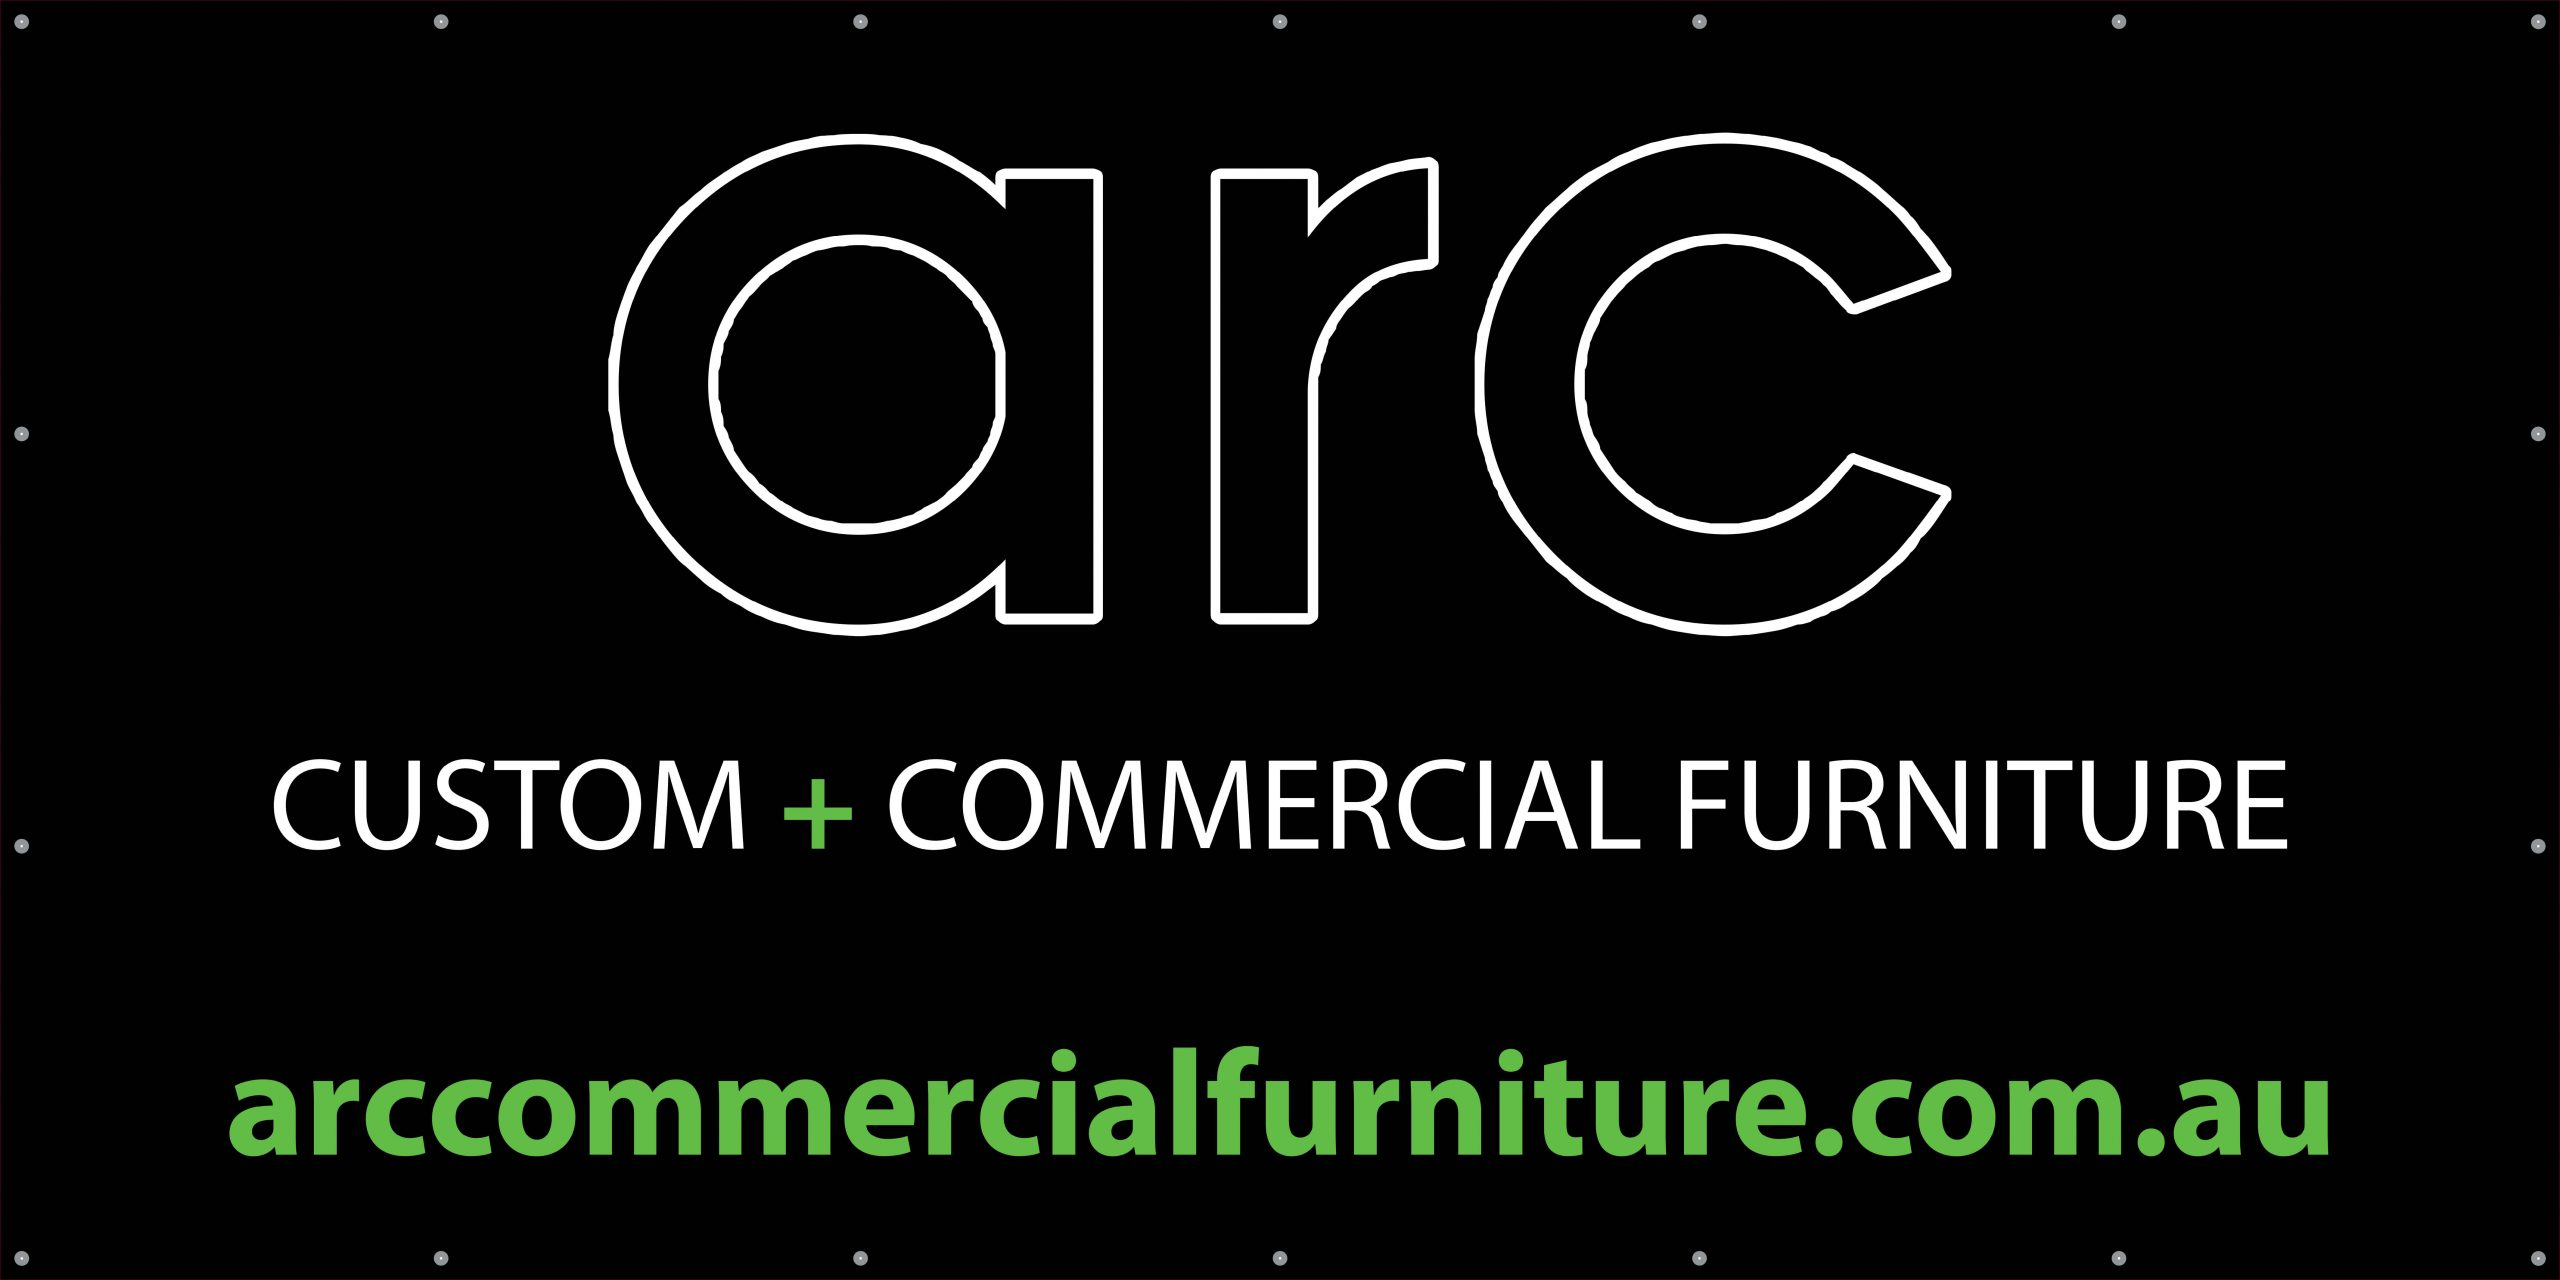 Arc Commercial Furniture